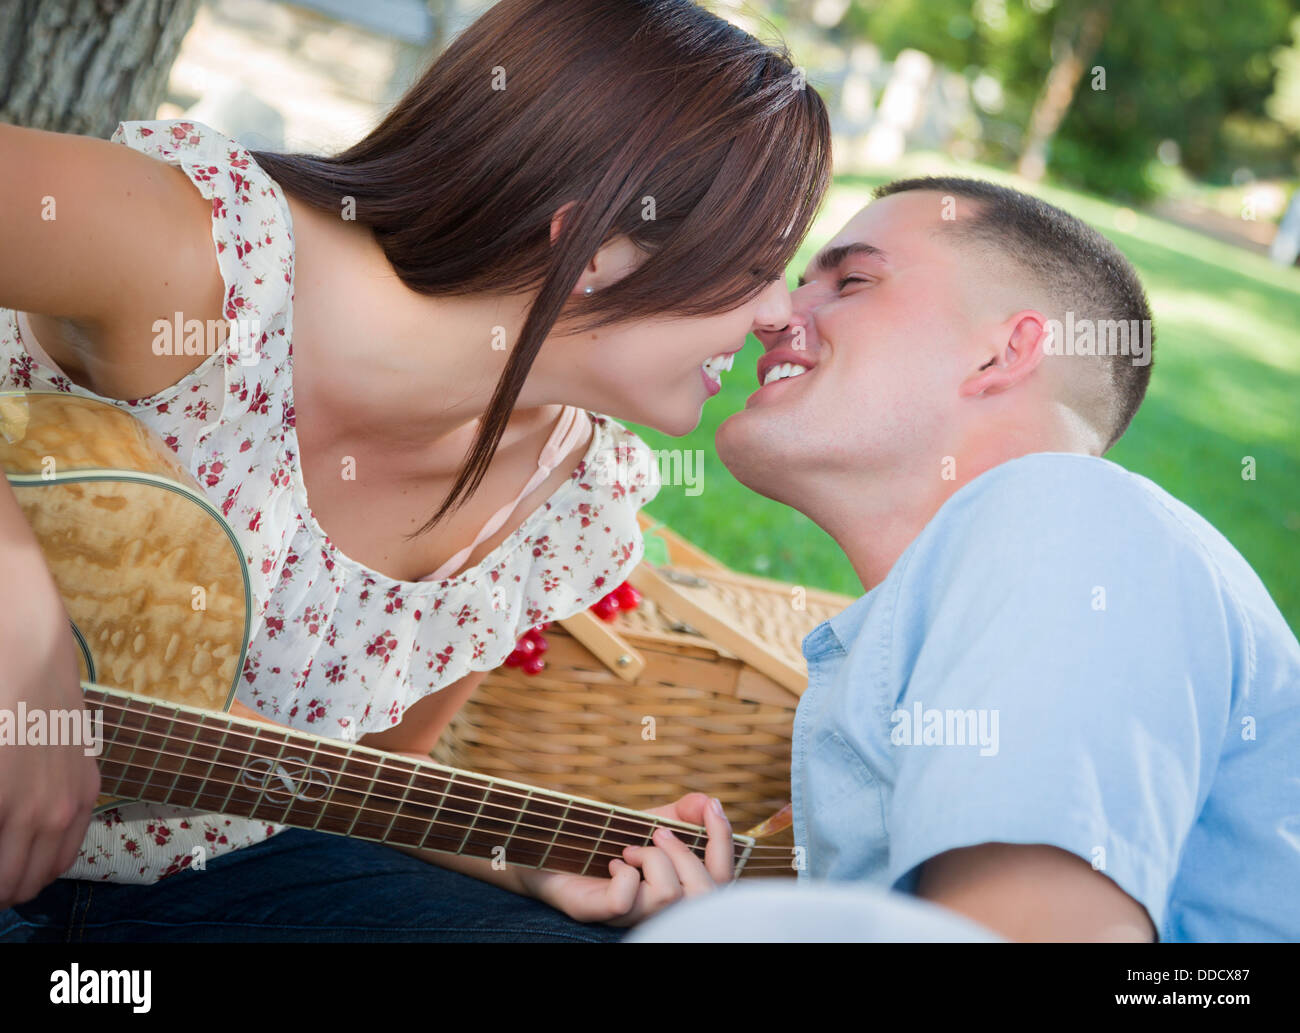 Affectionate Mixed Race Couple with Guitar Kissing in the Park. - Stock Image